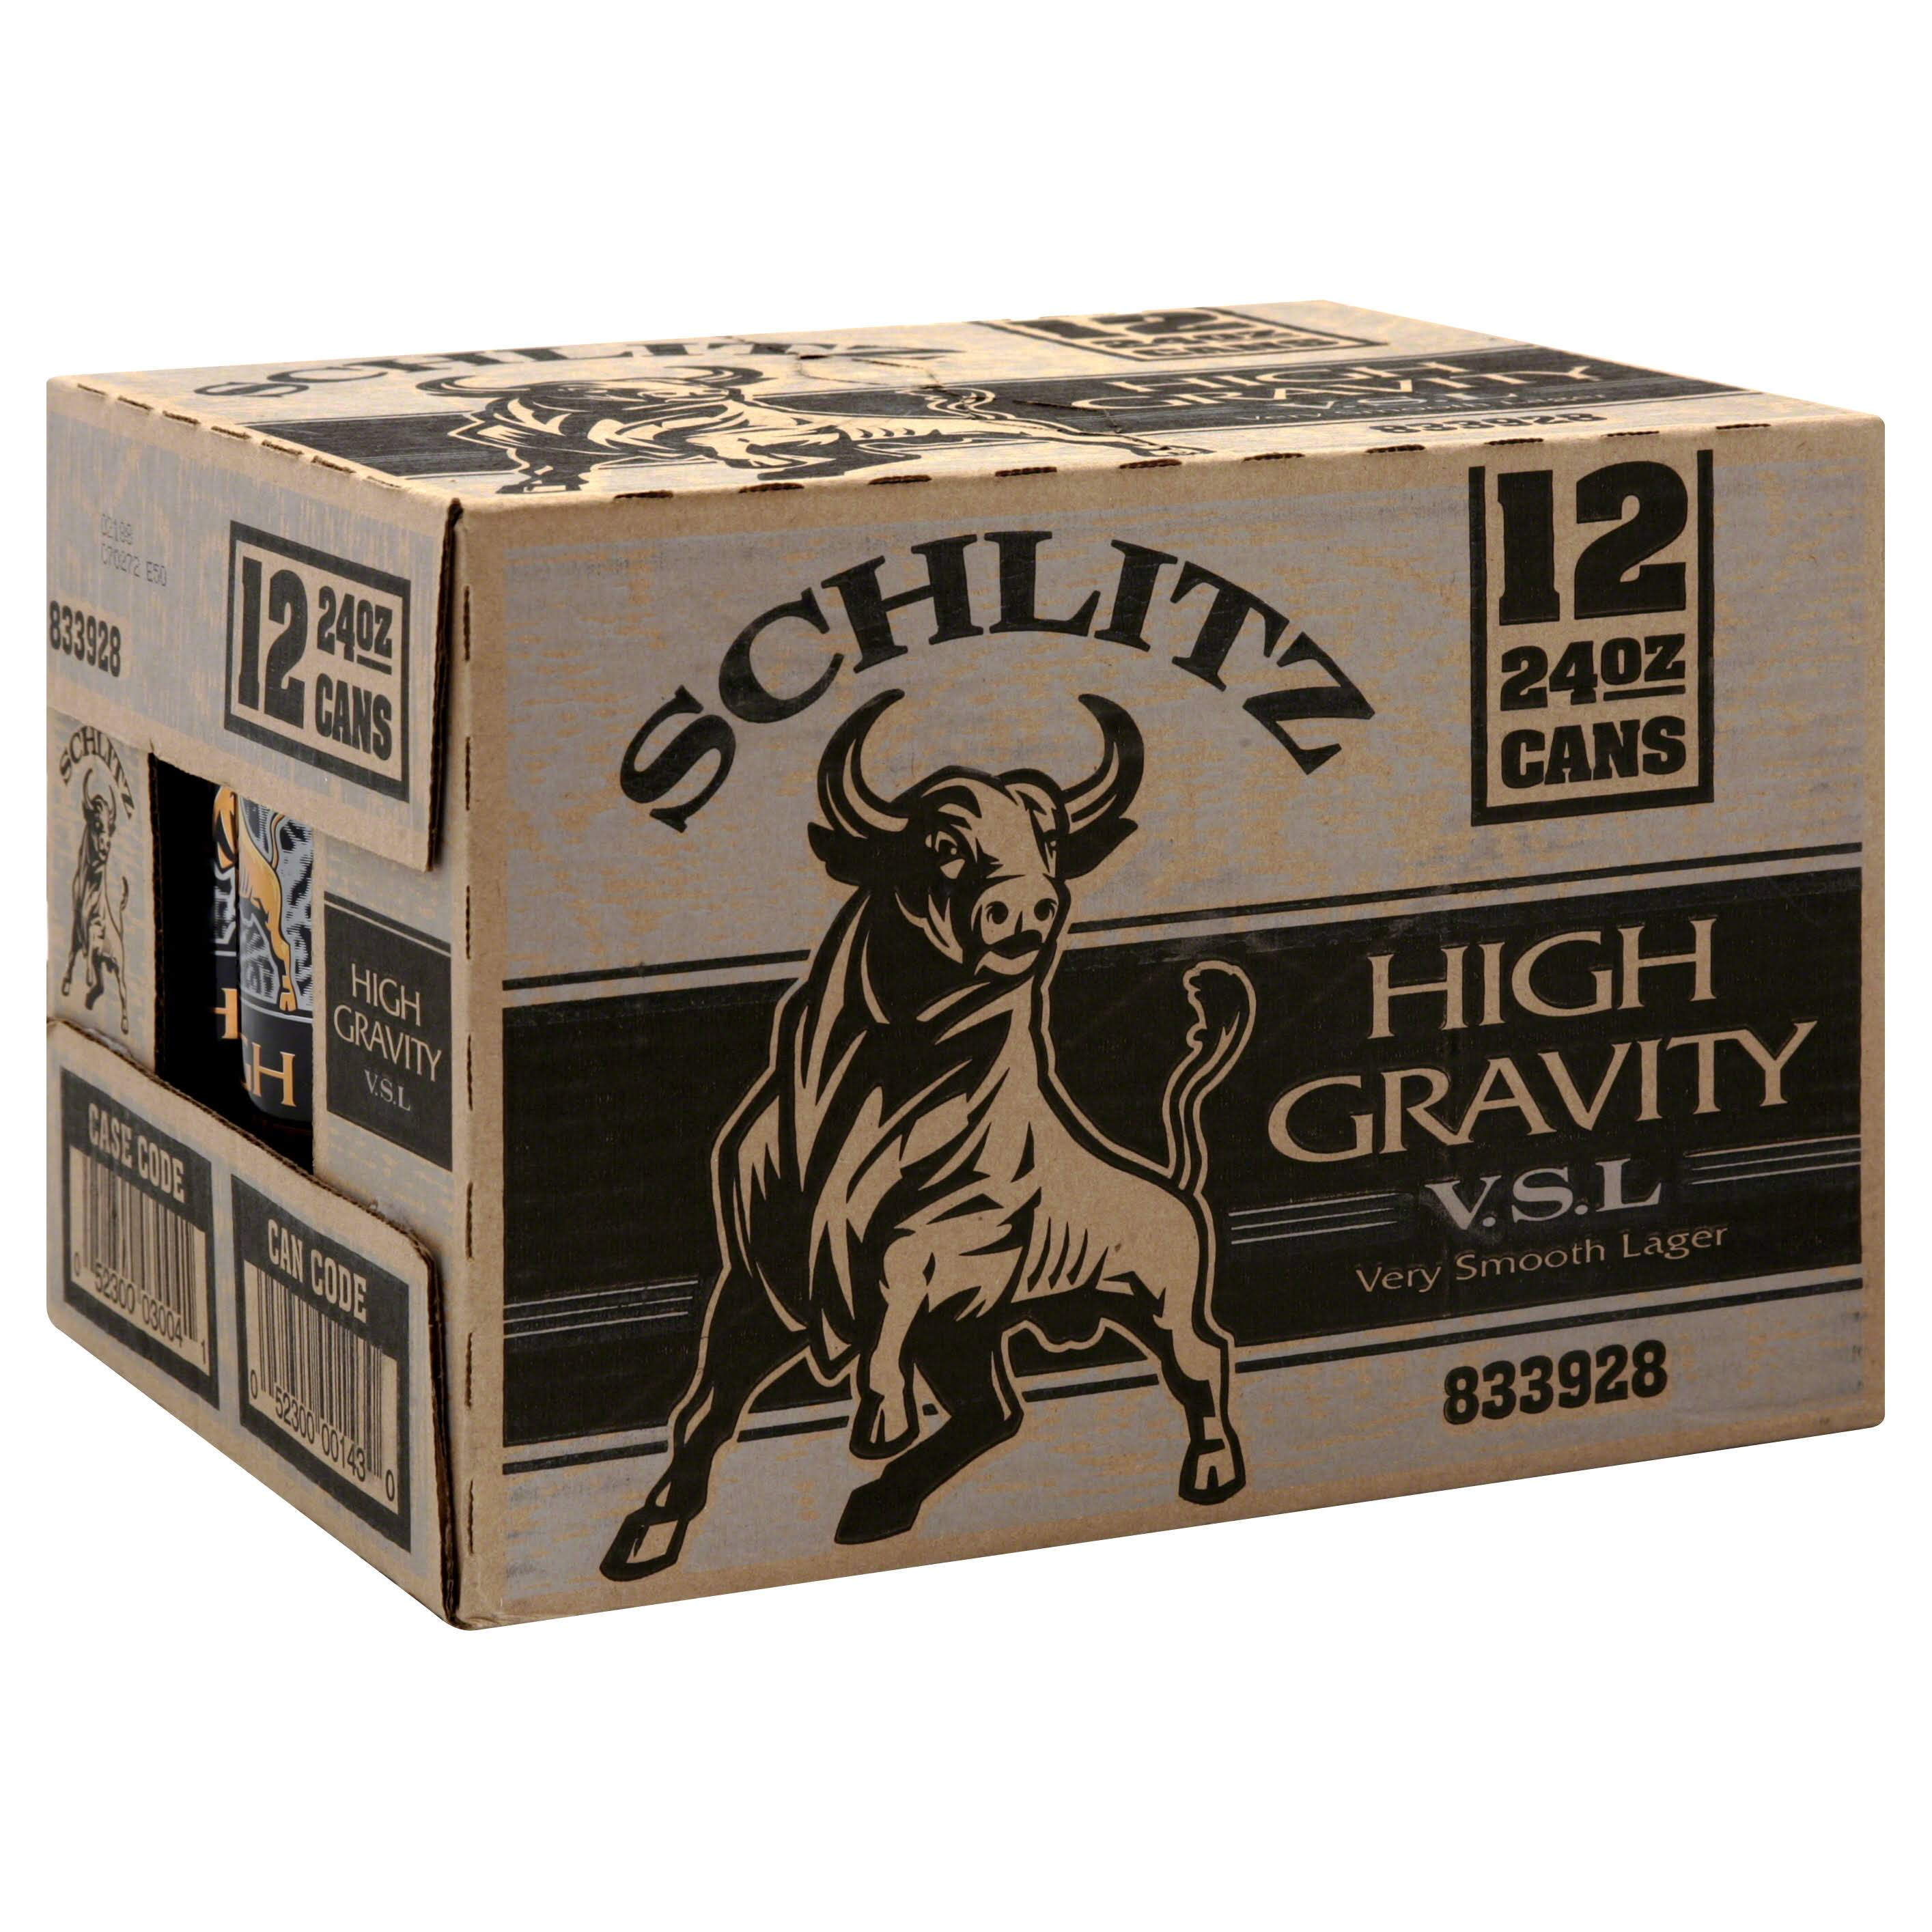 Schlitz High Gravity V.S.L Lager - 12 pack, 24 fl oz cans